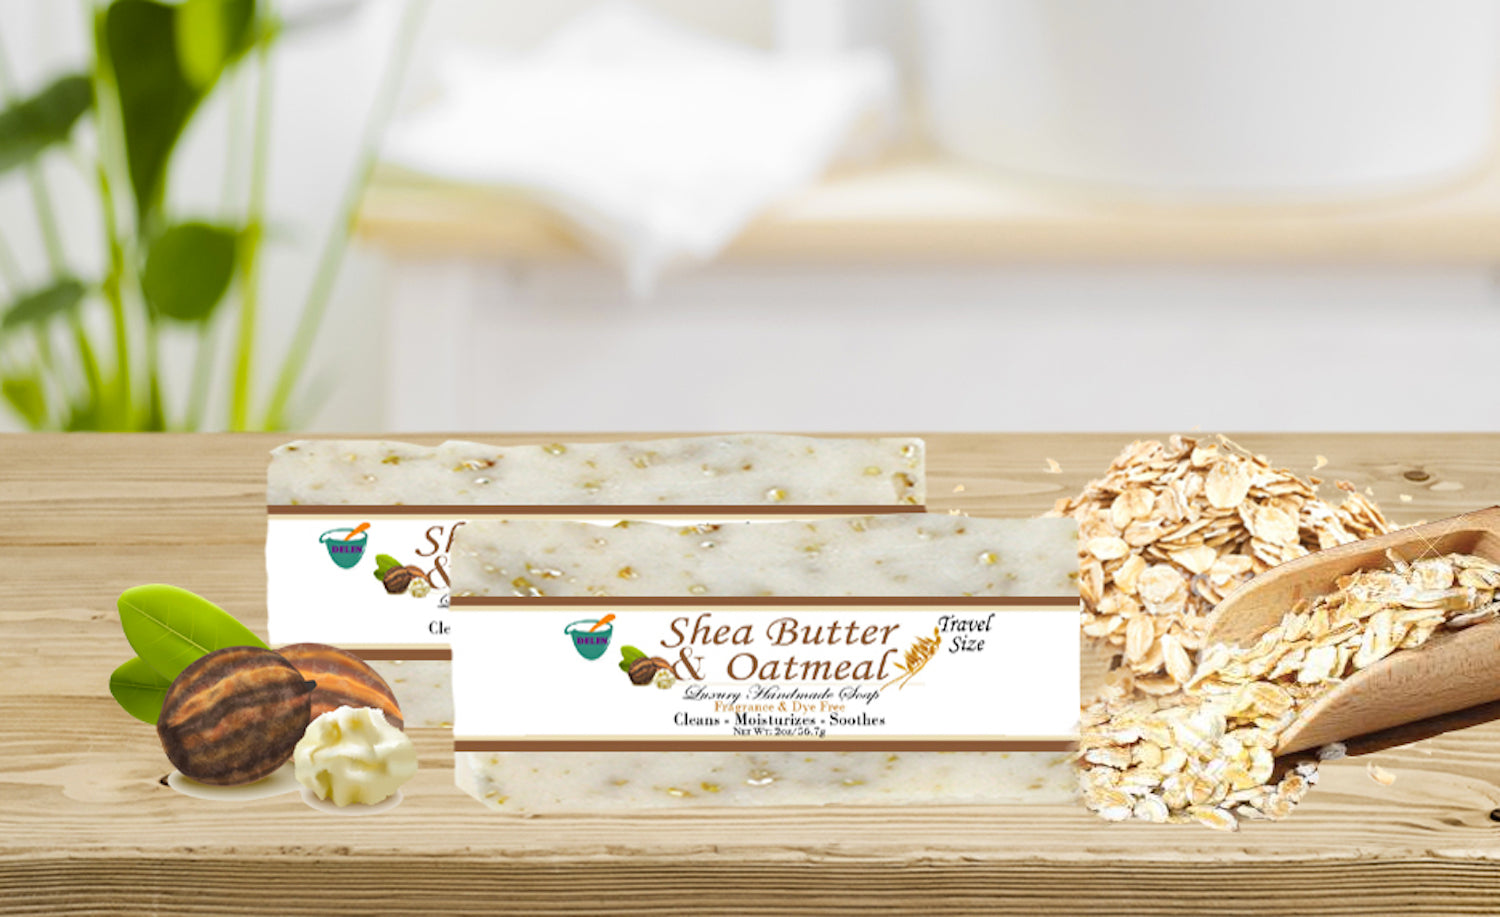 SHEA BUTTER & OATMEAL  2oz BAR SOAP